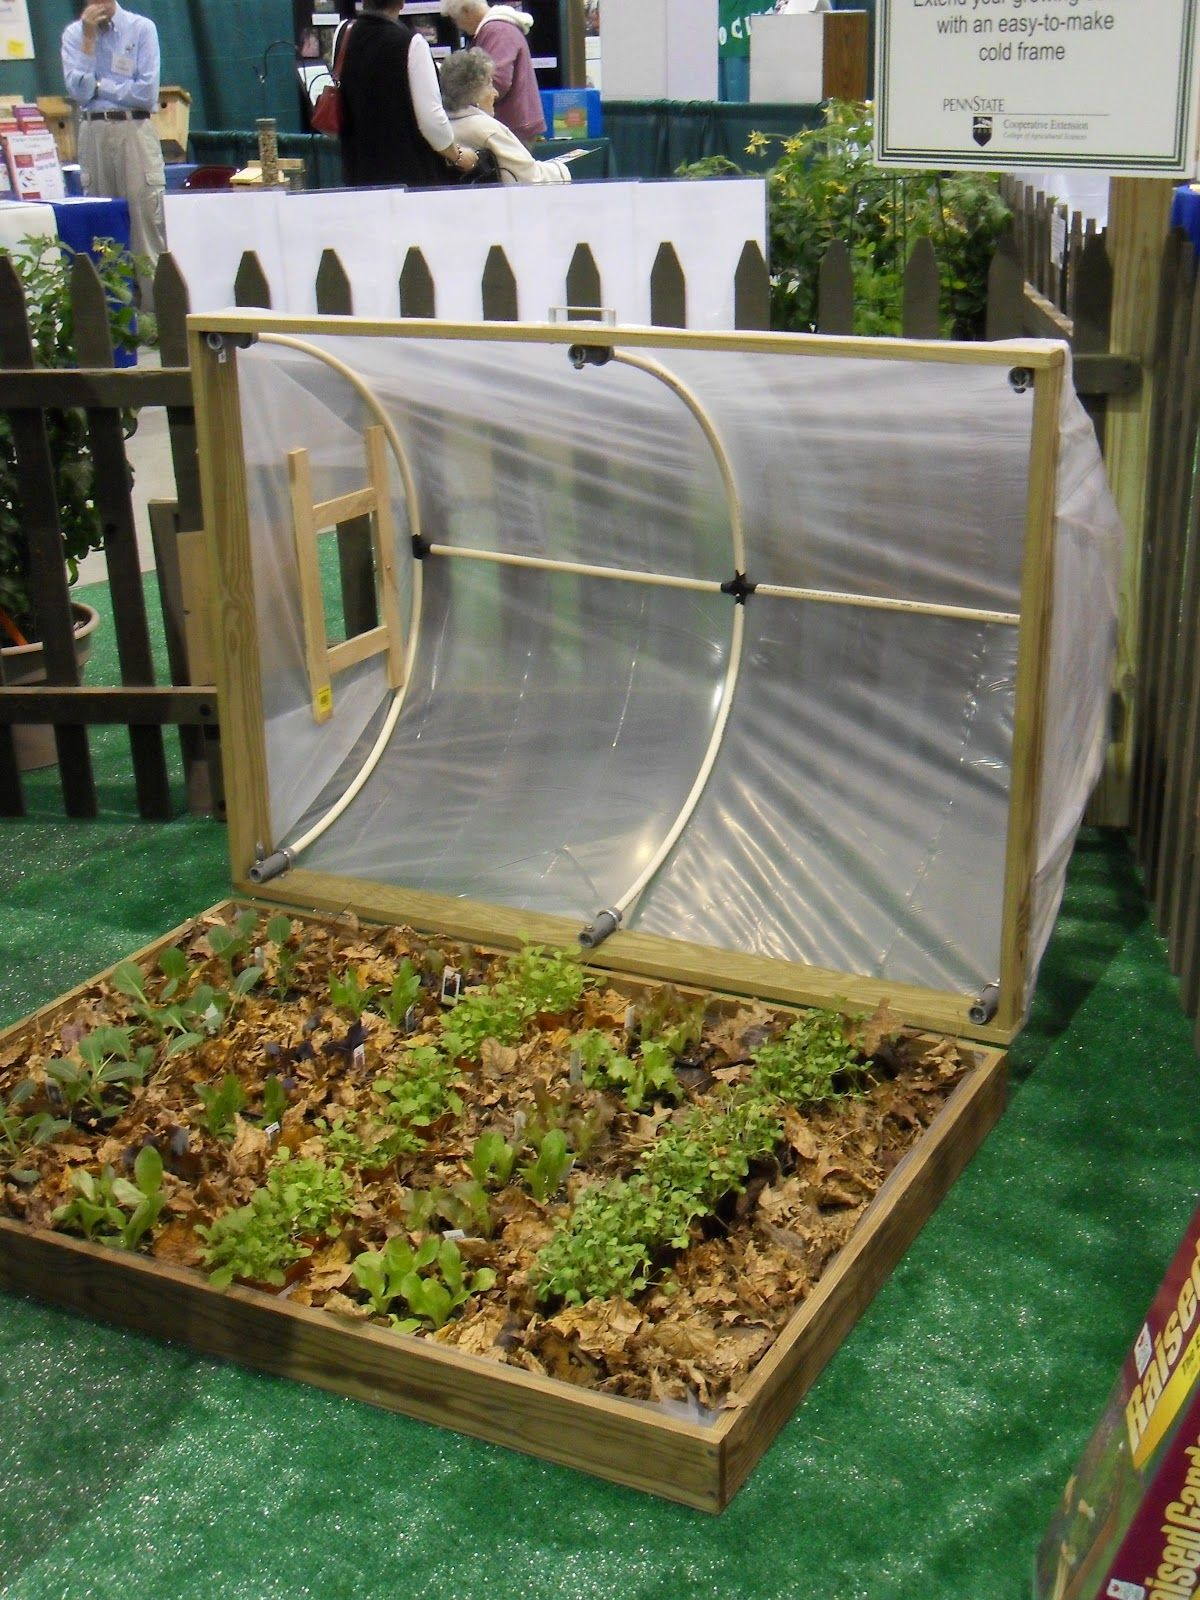 Pallet greenhouse mini greenhouse with easy open roof for How to make house green